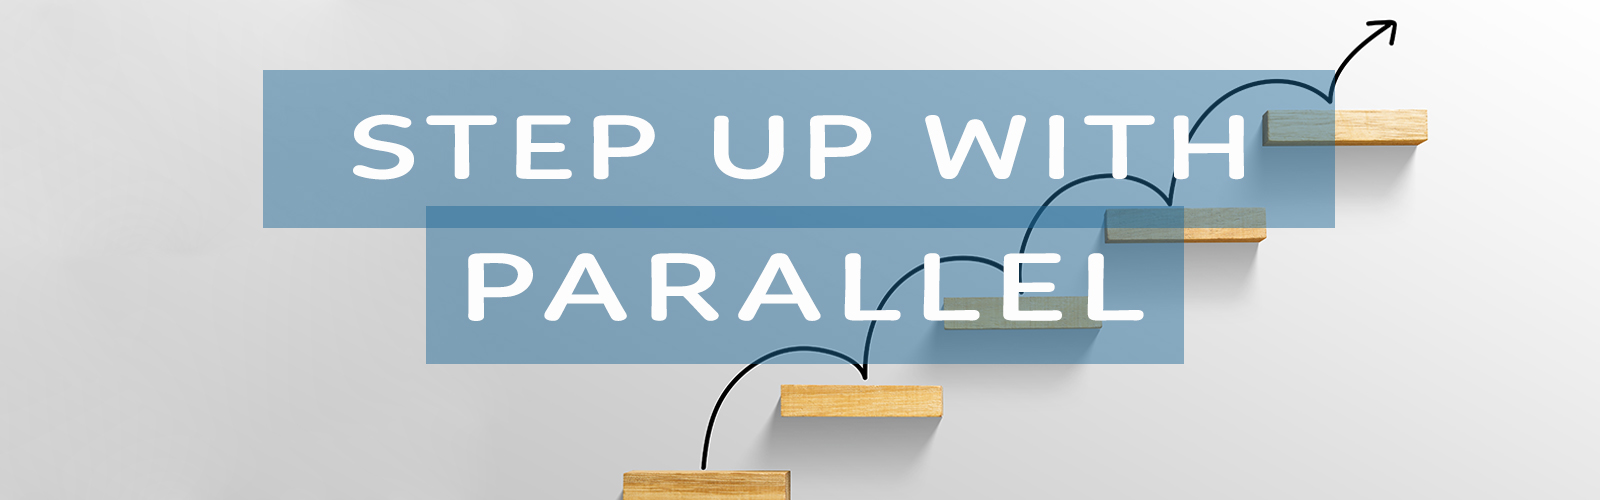 Parallel_StepUp_Banner-website